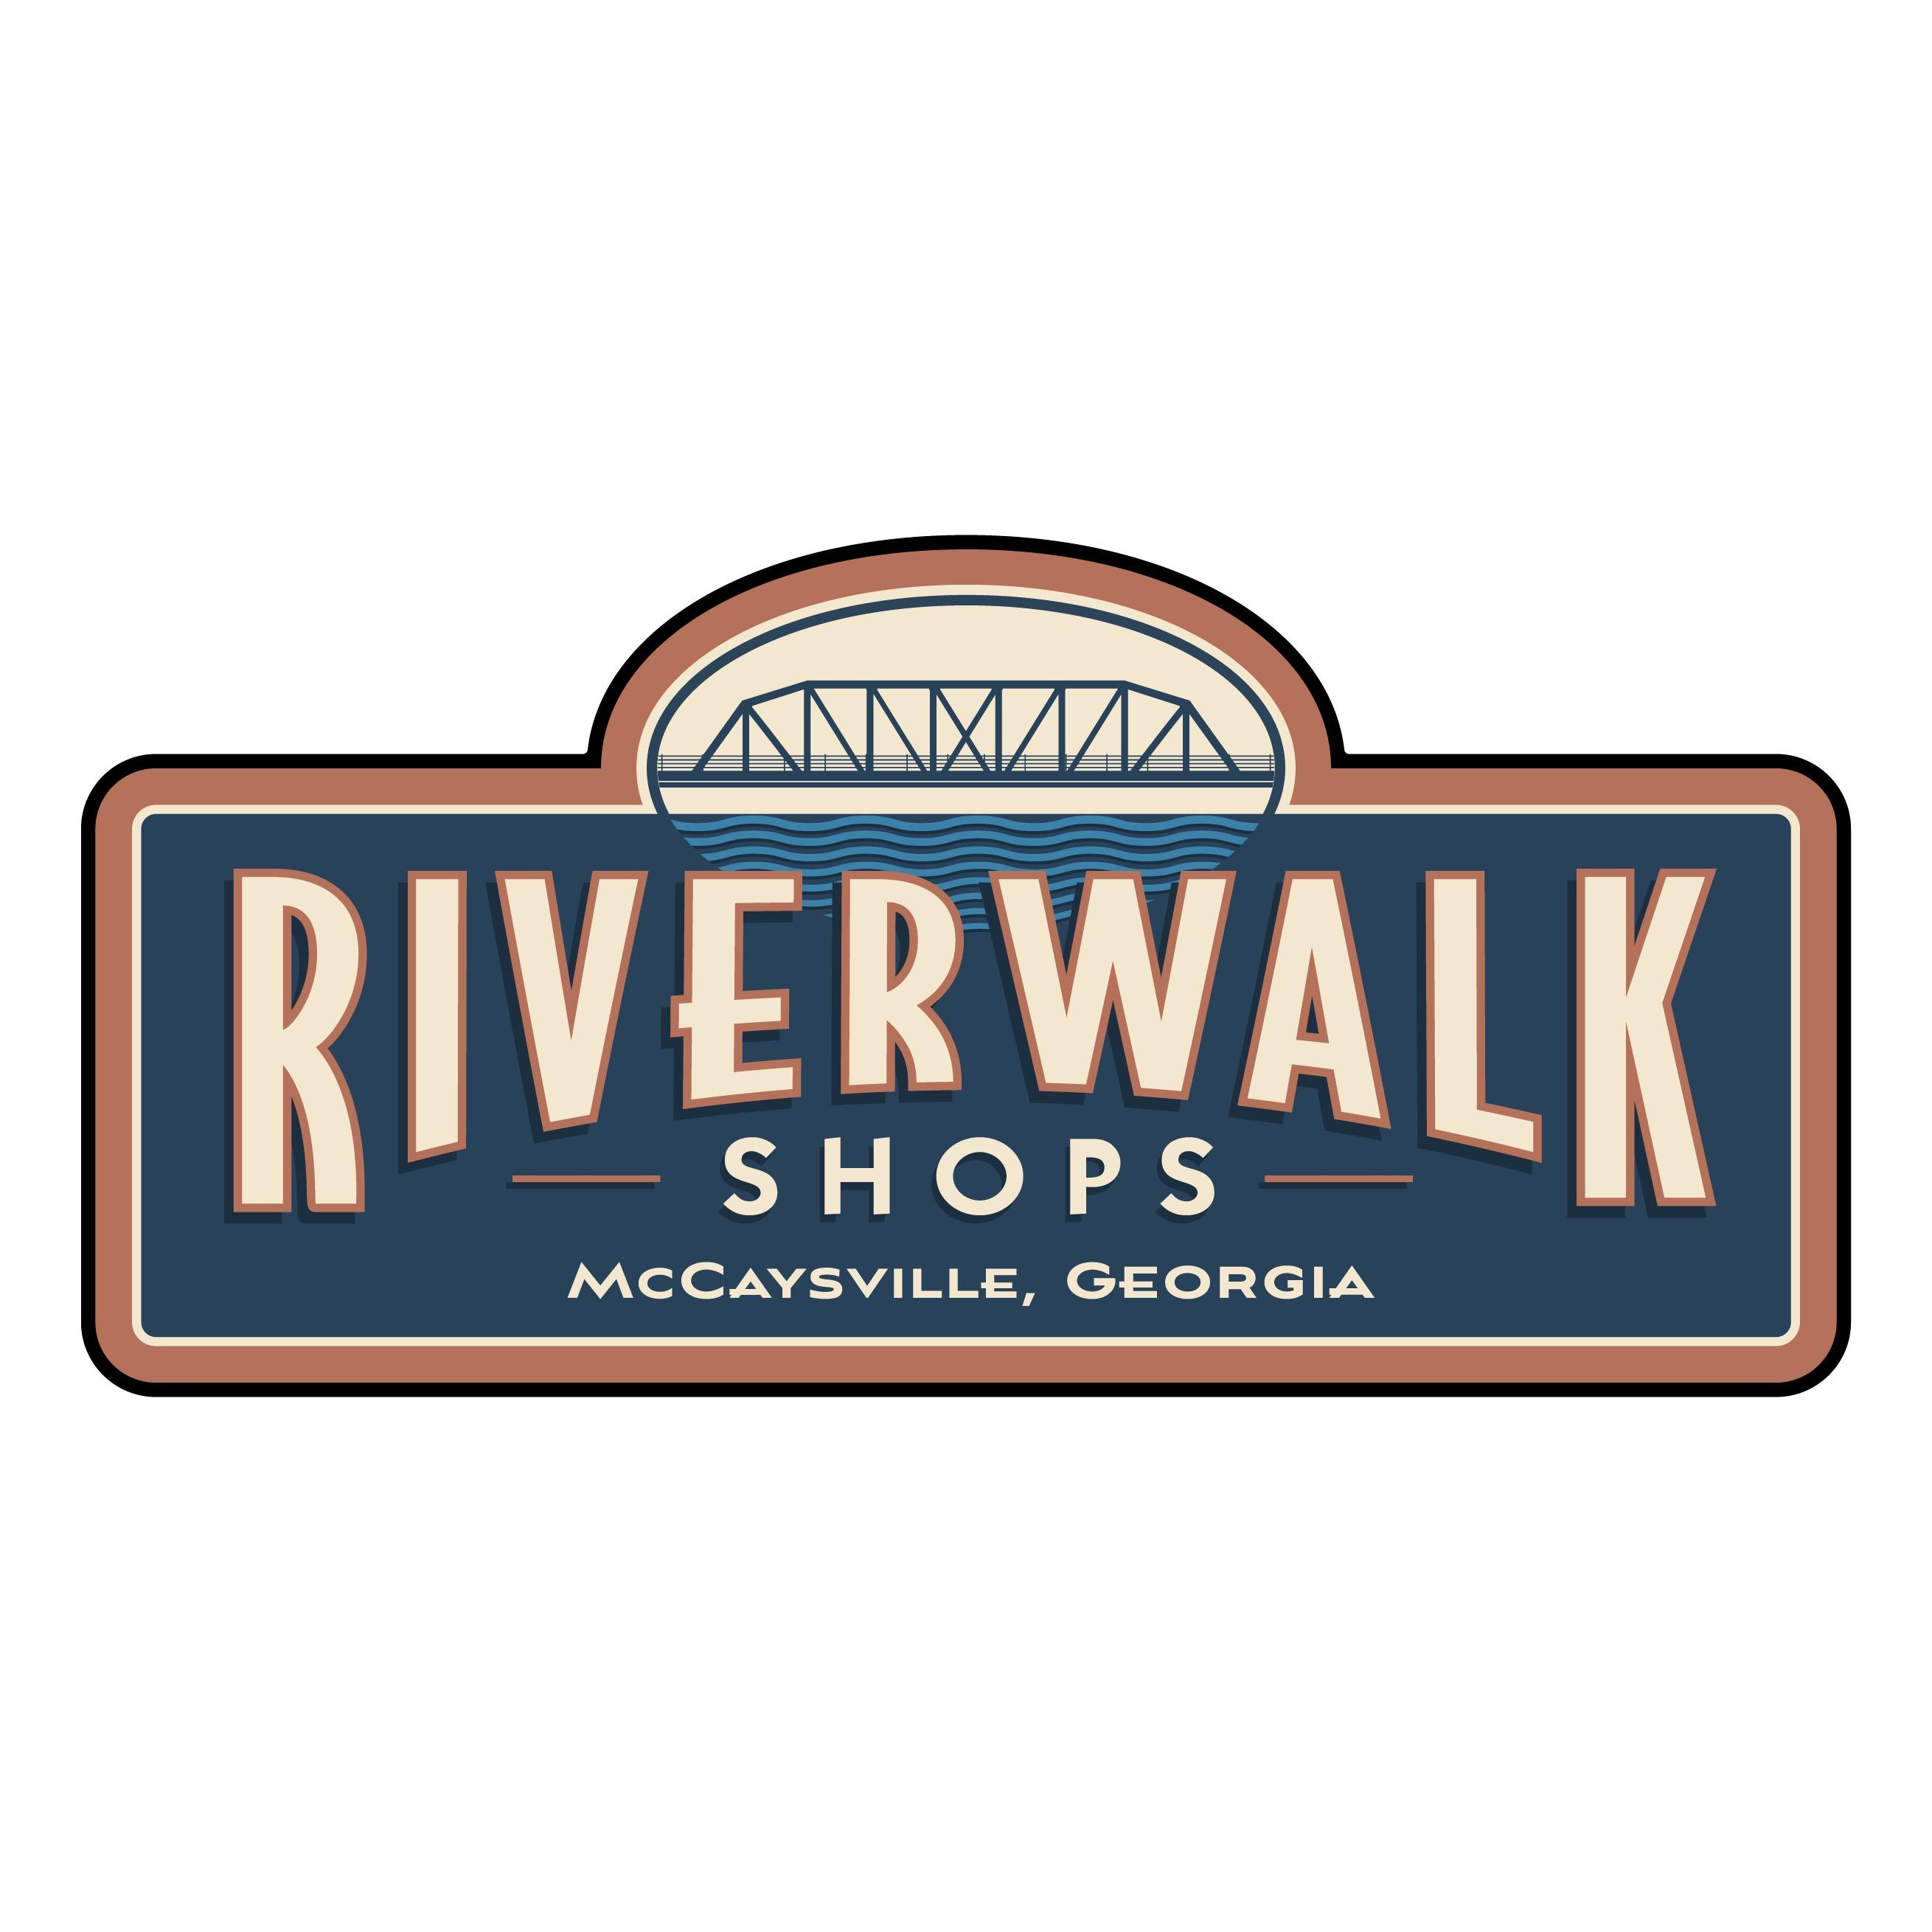 Riverwalk Shops - McCaysville, GA 30555 - (706)964-8800 | ShowMeLocal.com